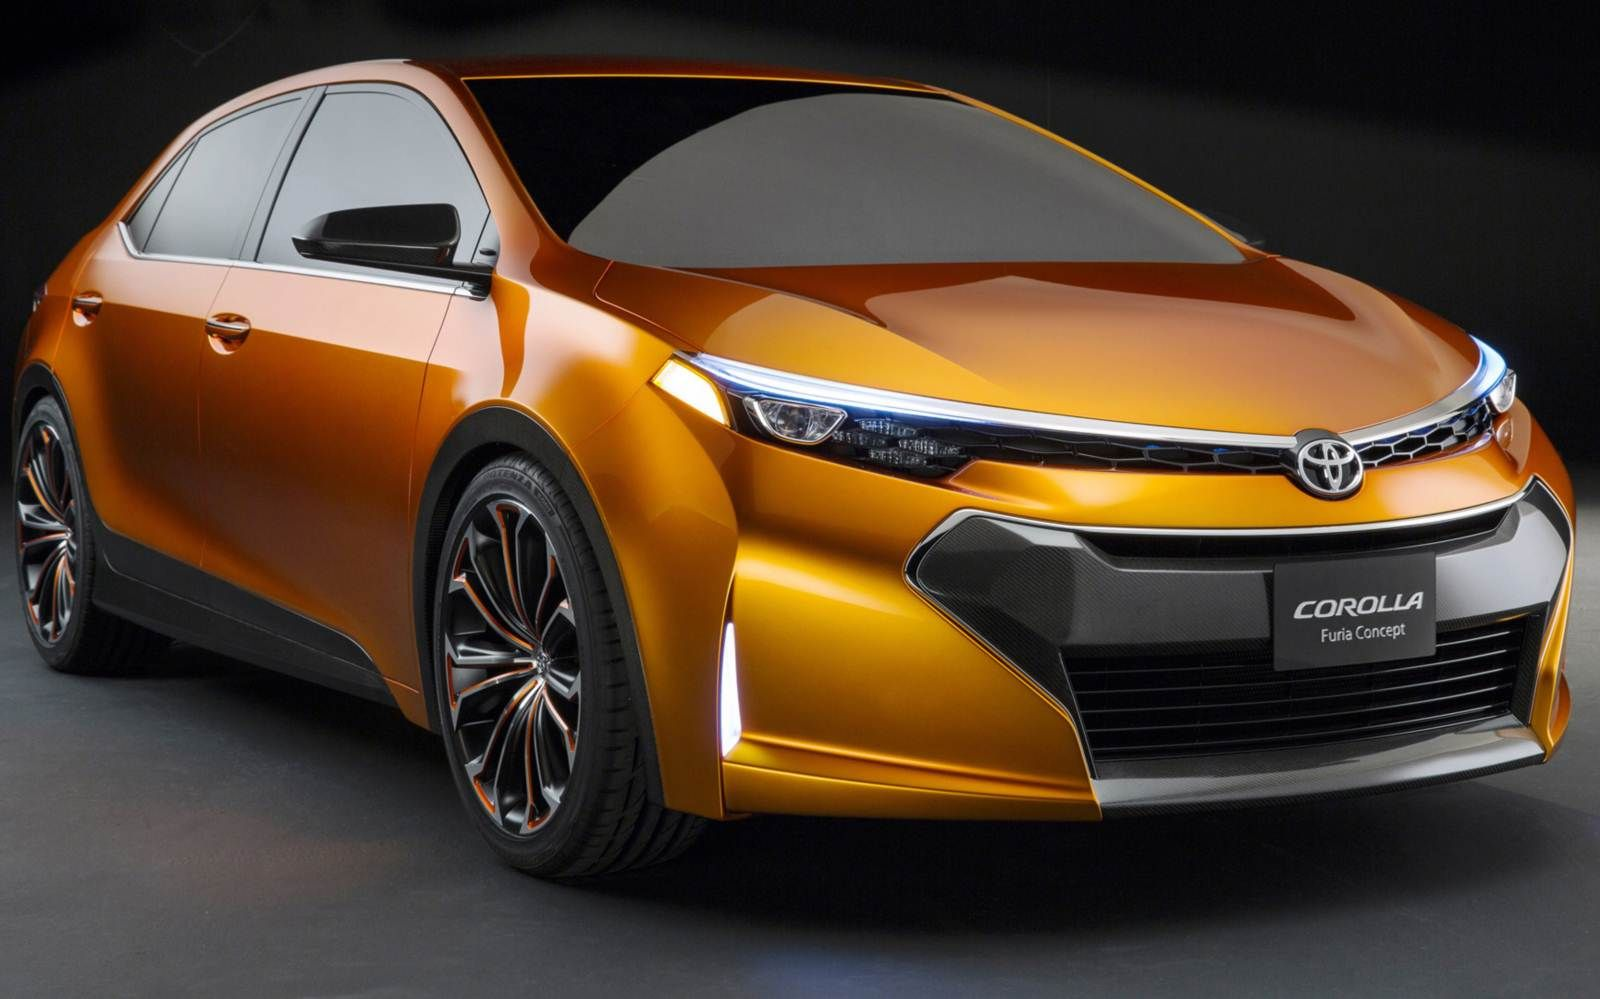 2015 Toyota Corolla Price And Release Date Toyota Cars Toyota Auris Toyota Concept Car